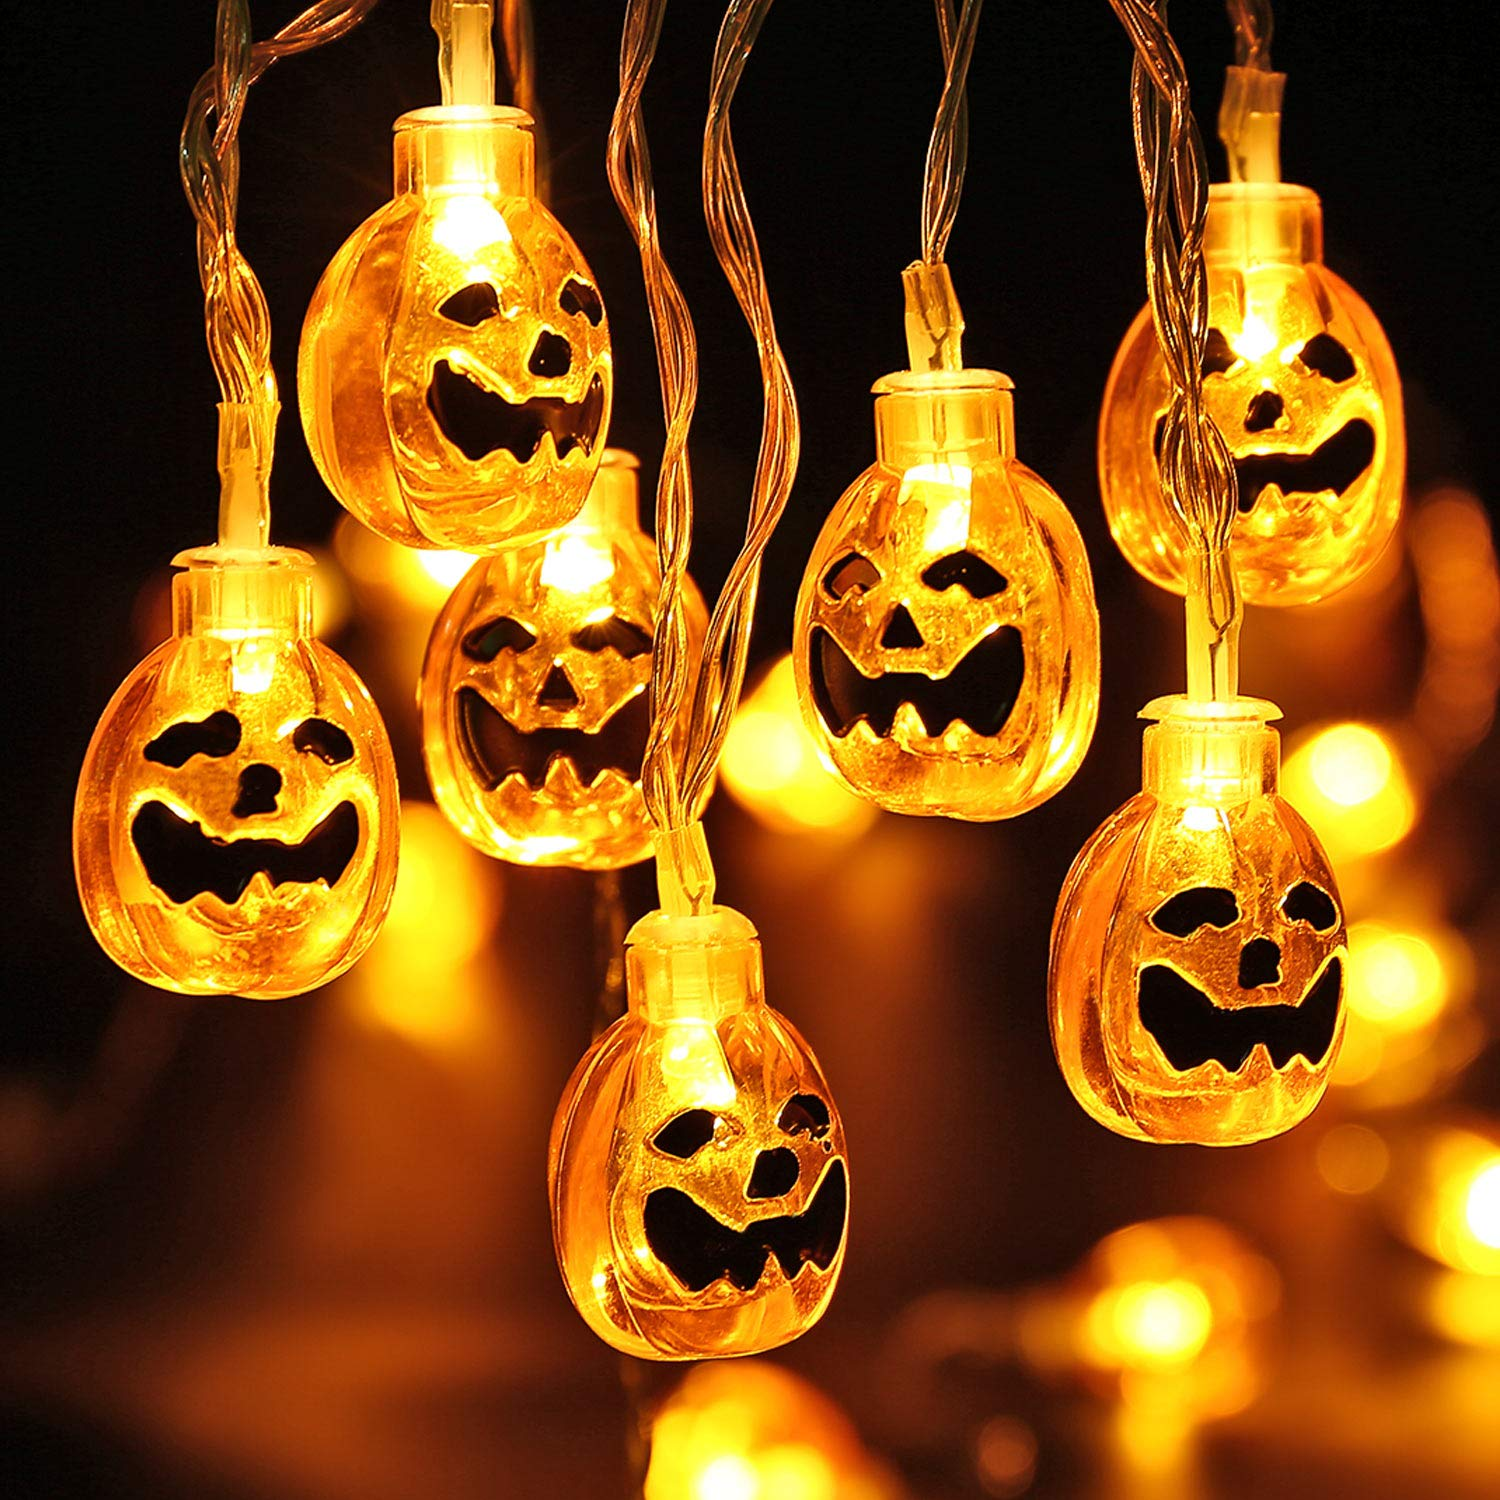 VegaHome Pumpkin Carving Kits, 5 Tools Set, 10 Halloween Style Stencils Carving Templates and 2 LED Candles Lights for Kids Adults Pumpkin Carving Decoration Family Halloween DIY Activity